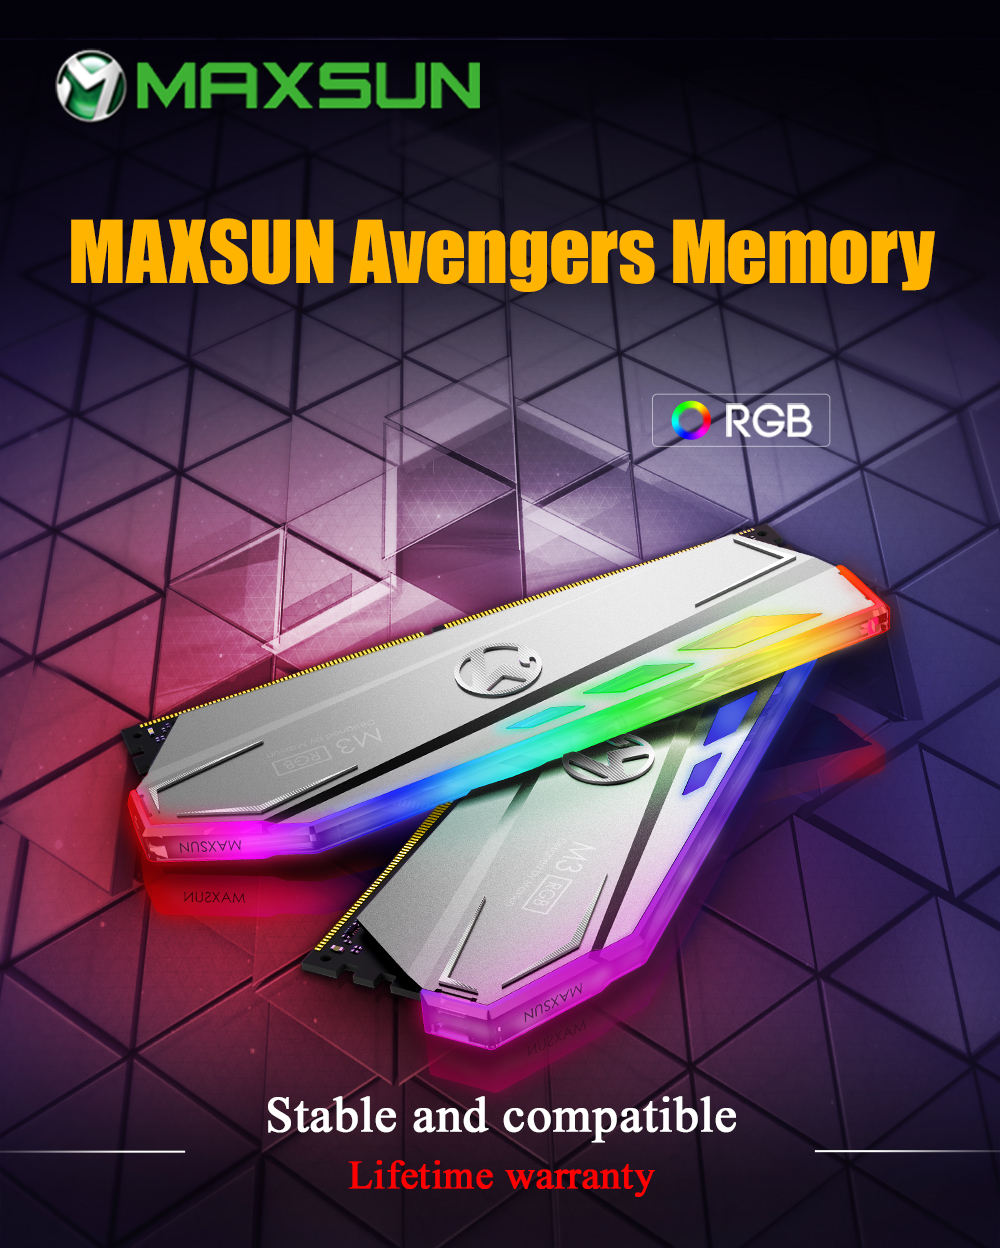 MAXSUN RAM DDR4 8GB/16GB Desktop Memory 2400MHz memory voltage 1.2V 17-17-17-39 Lifetime Warranty 288pin Flash Light Single RAMs 14